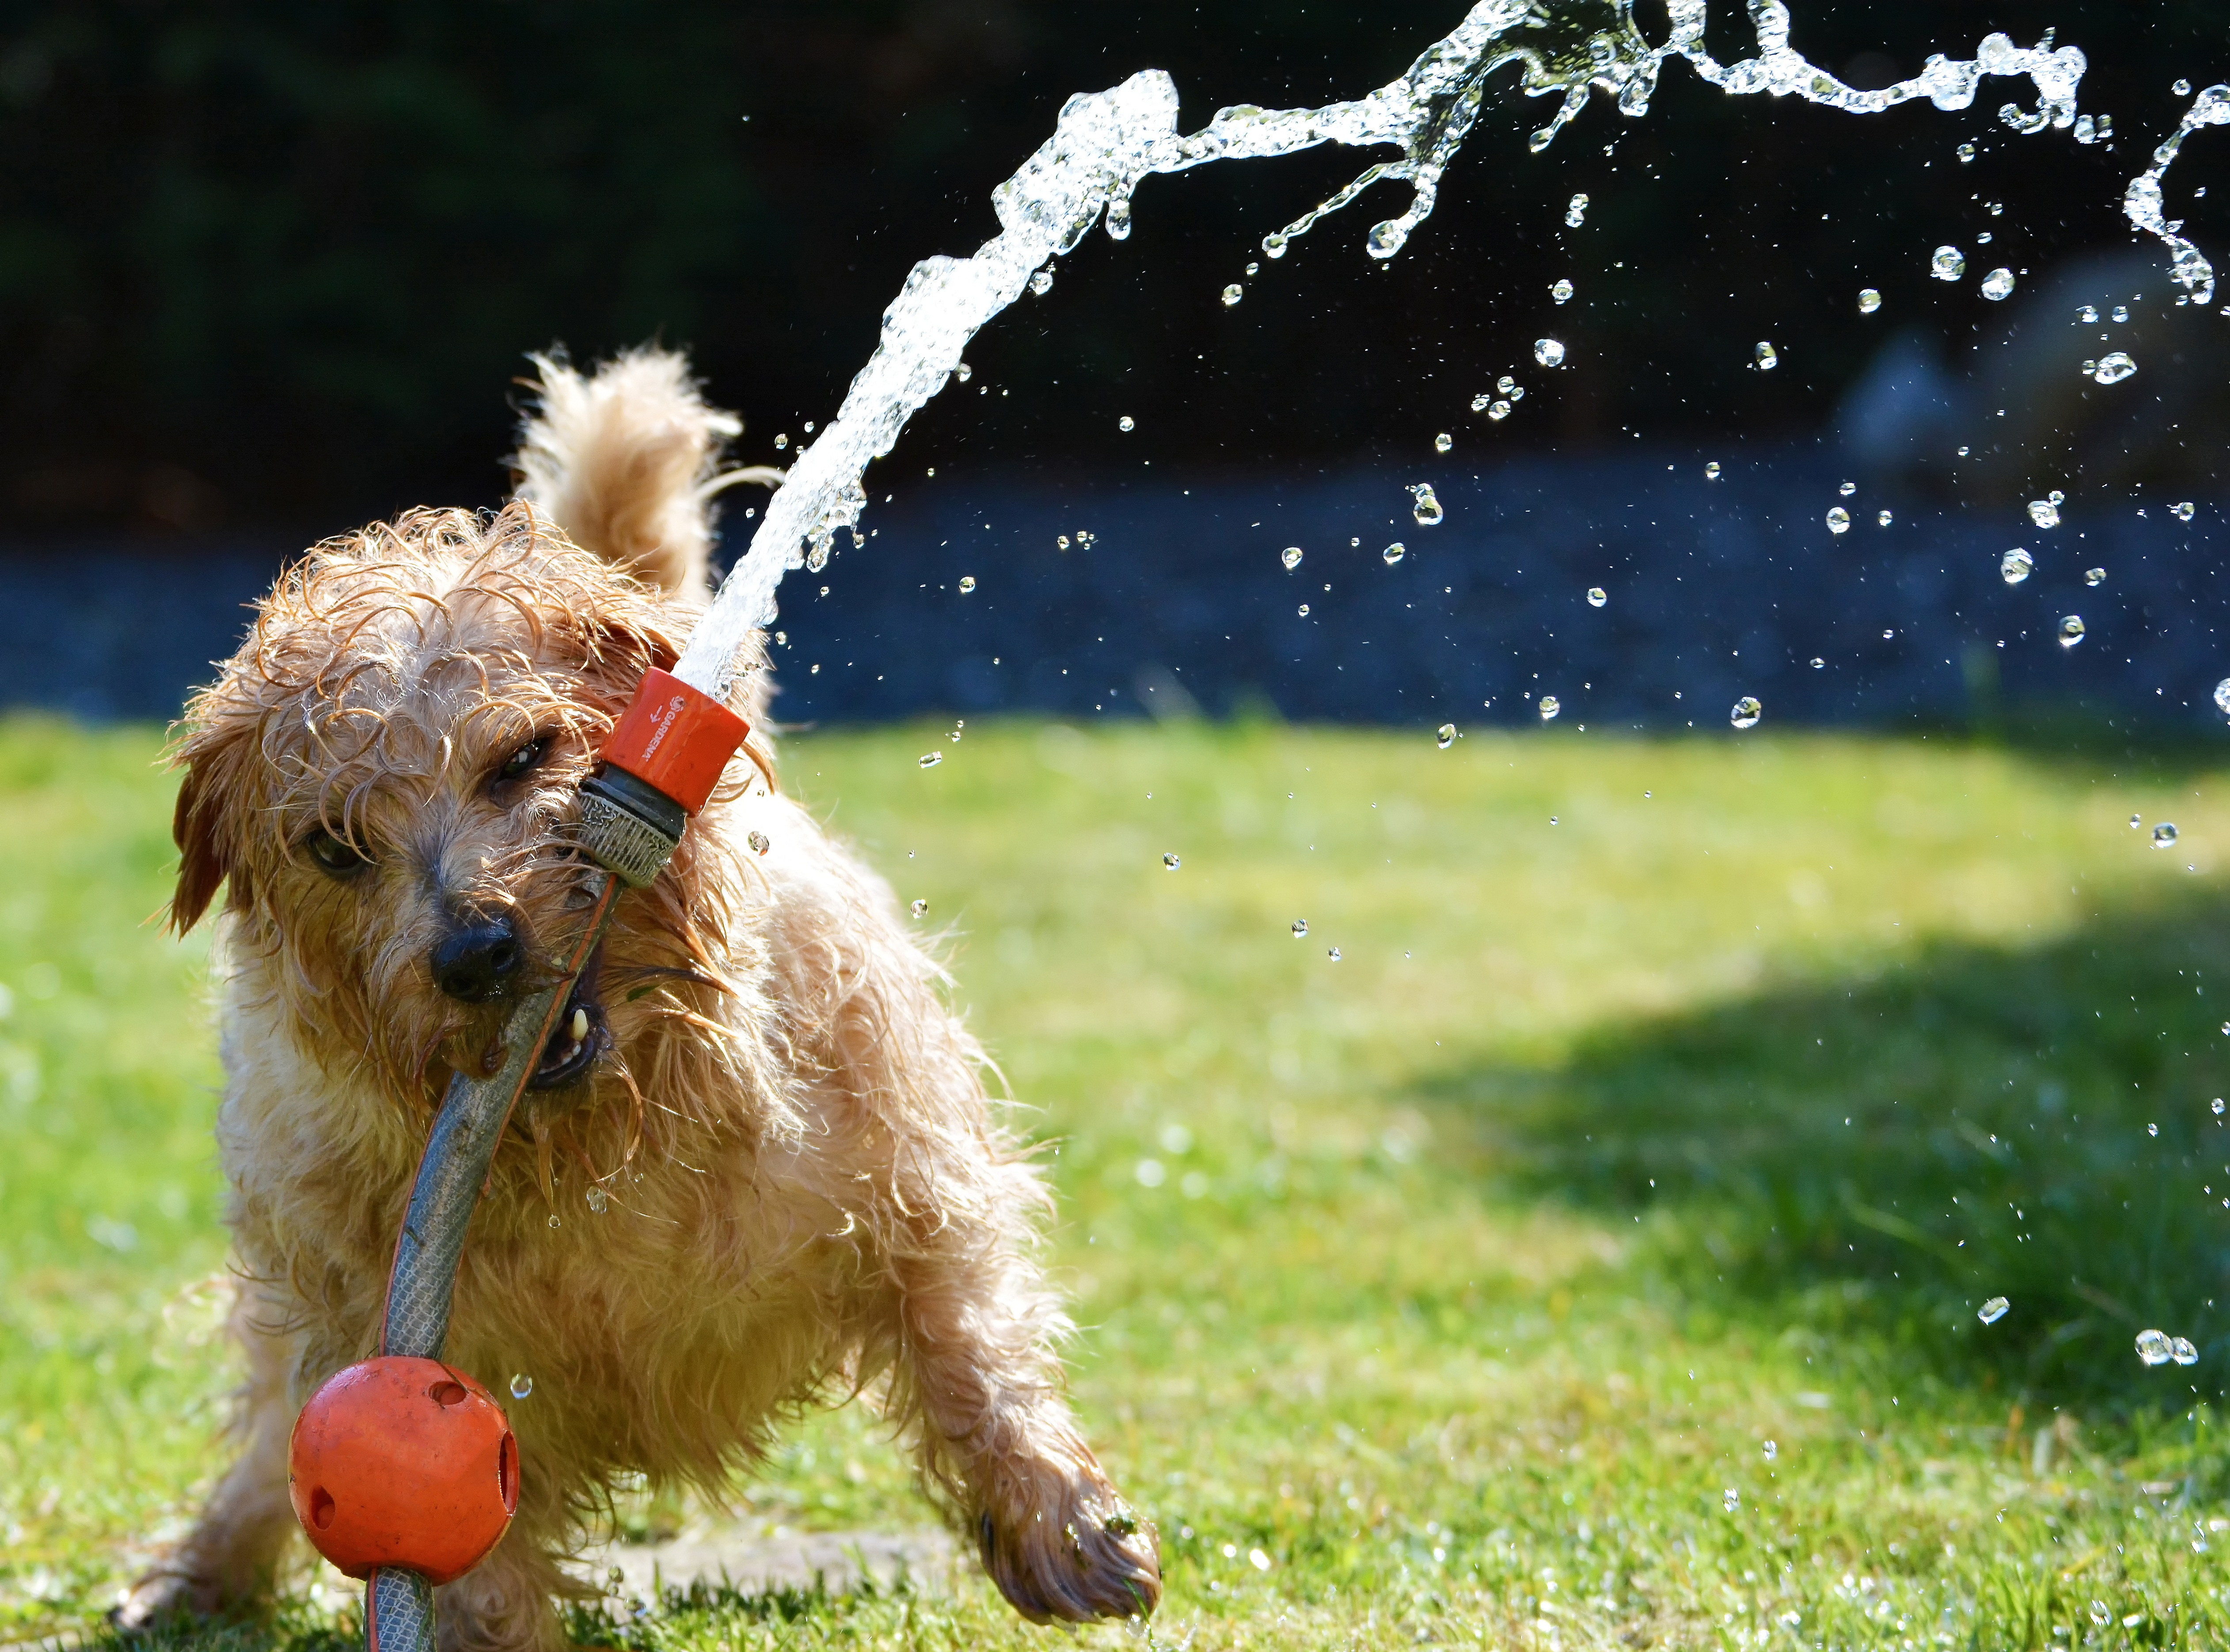 Canva - Puppy Playing with Garden Hose (1)